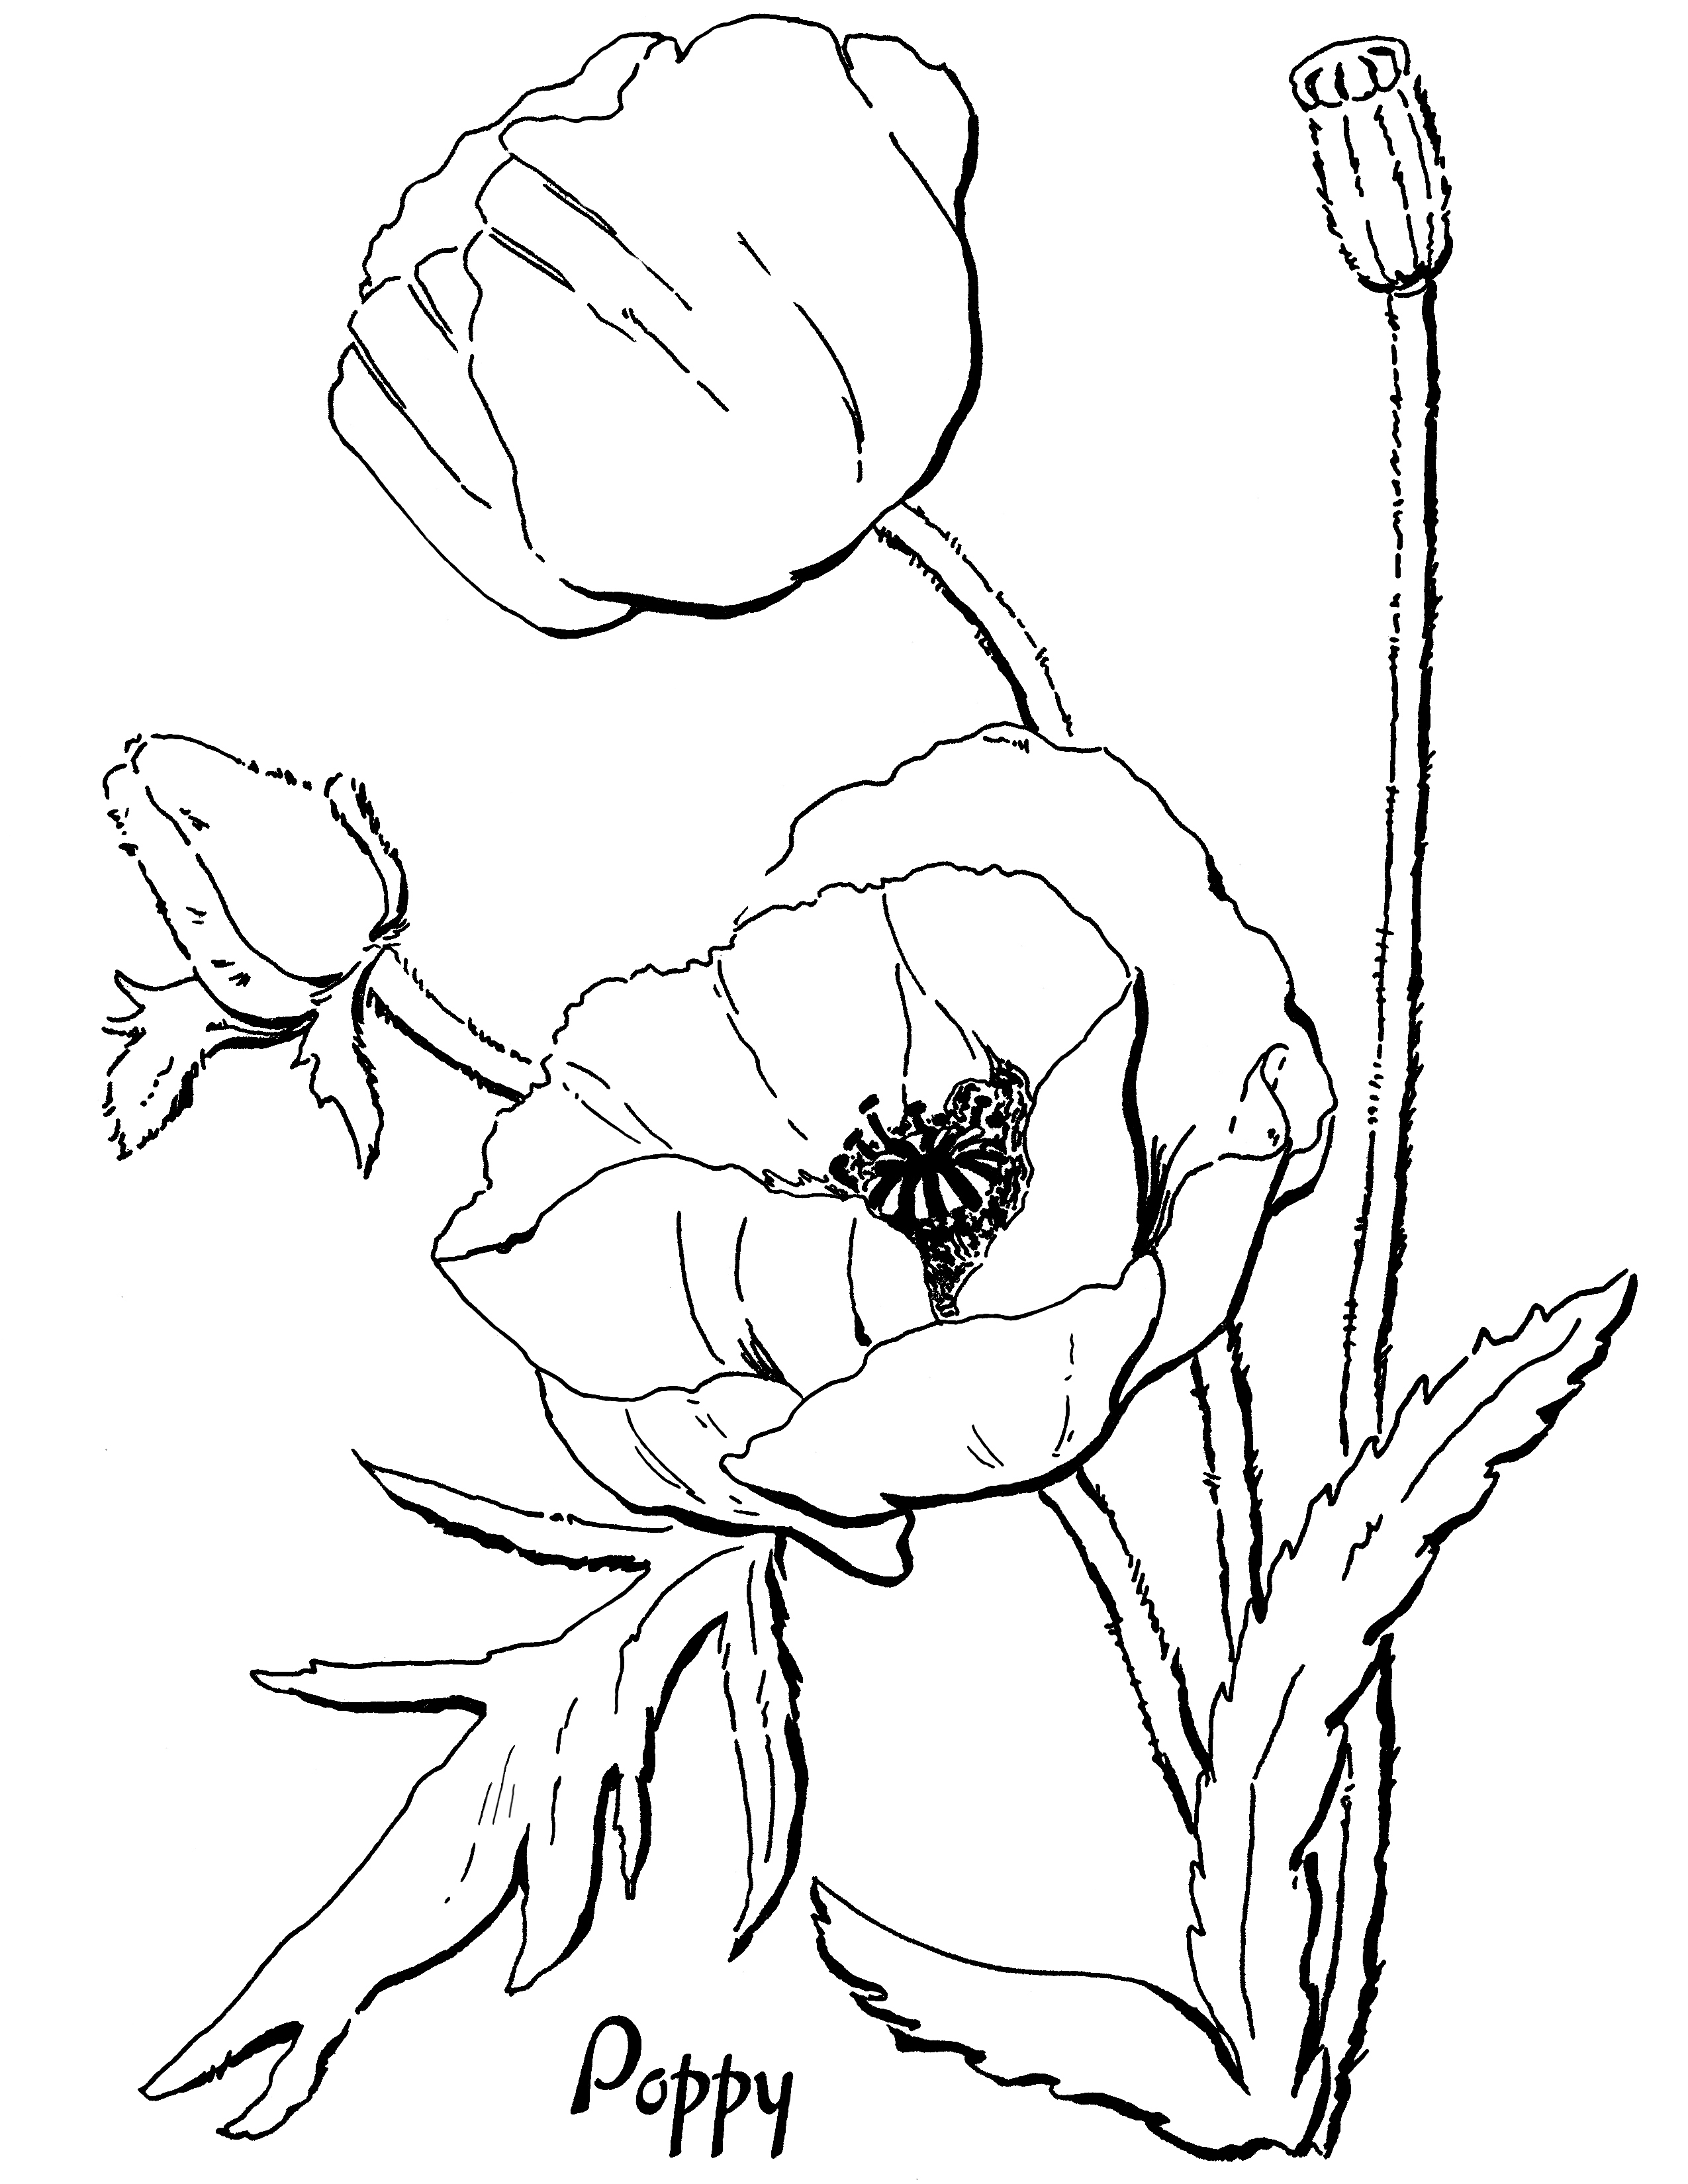 Drawn poppy coloring Adults! Fairy Page Page Graphics